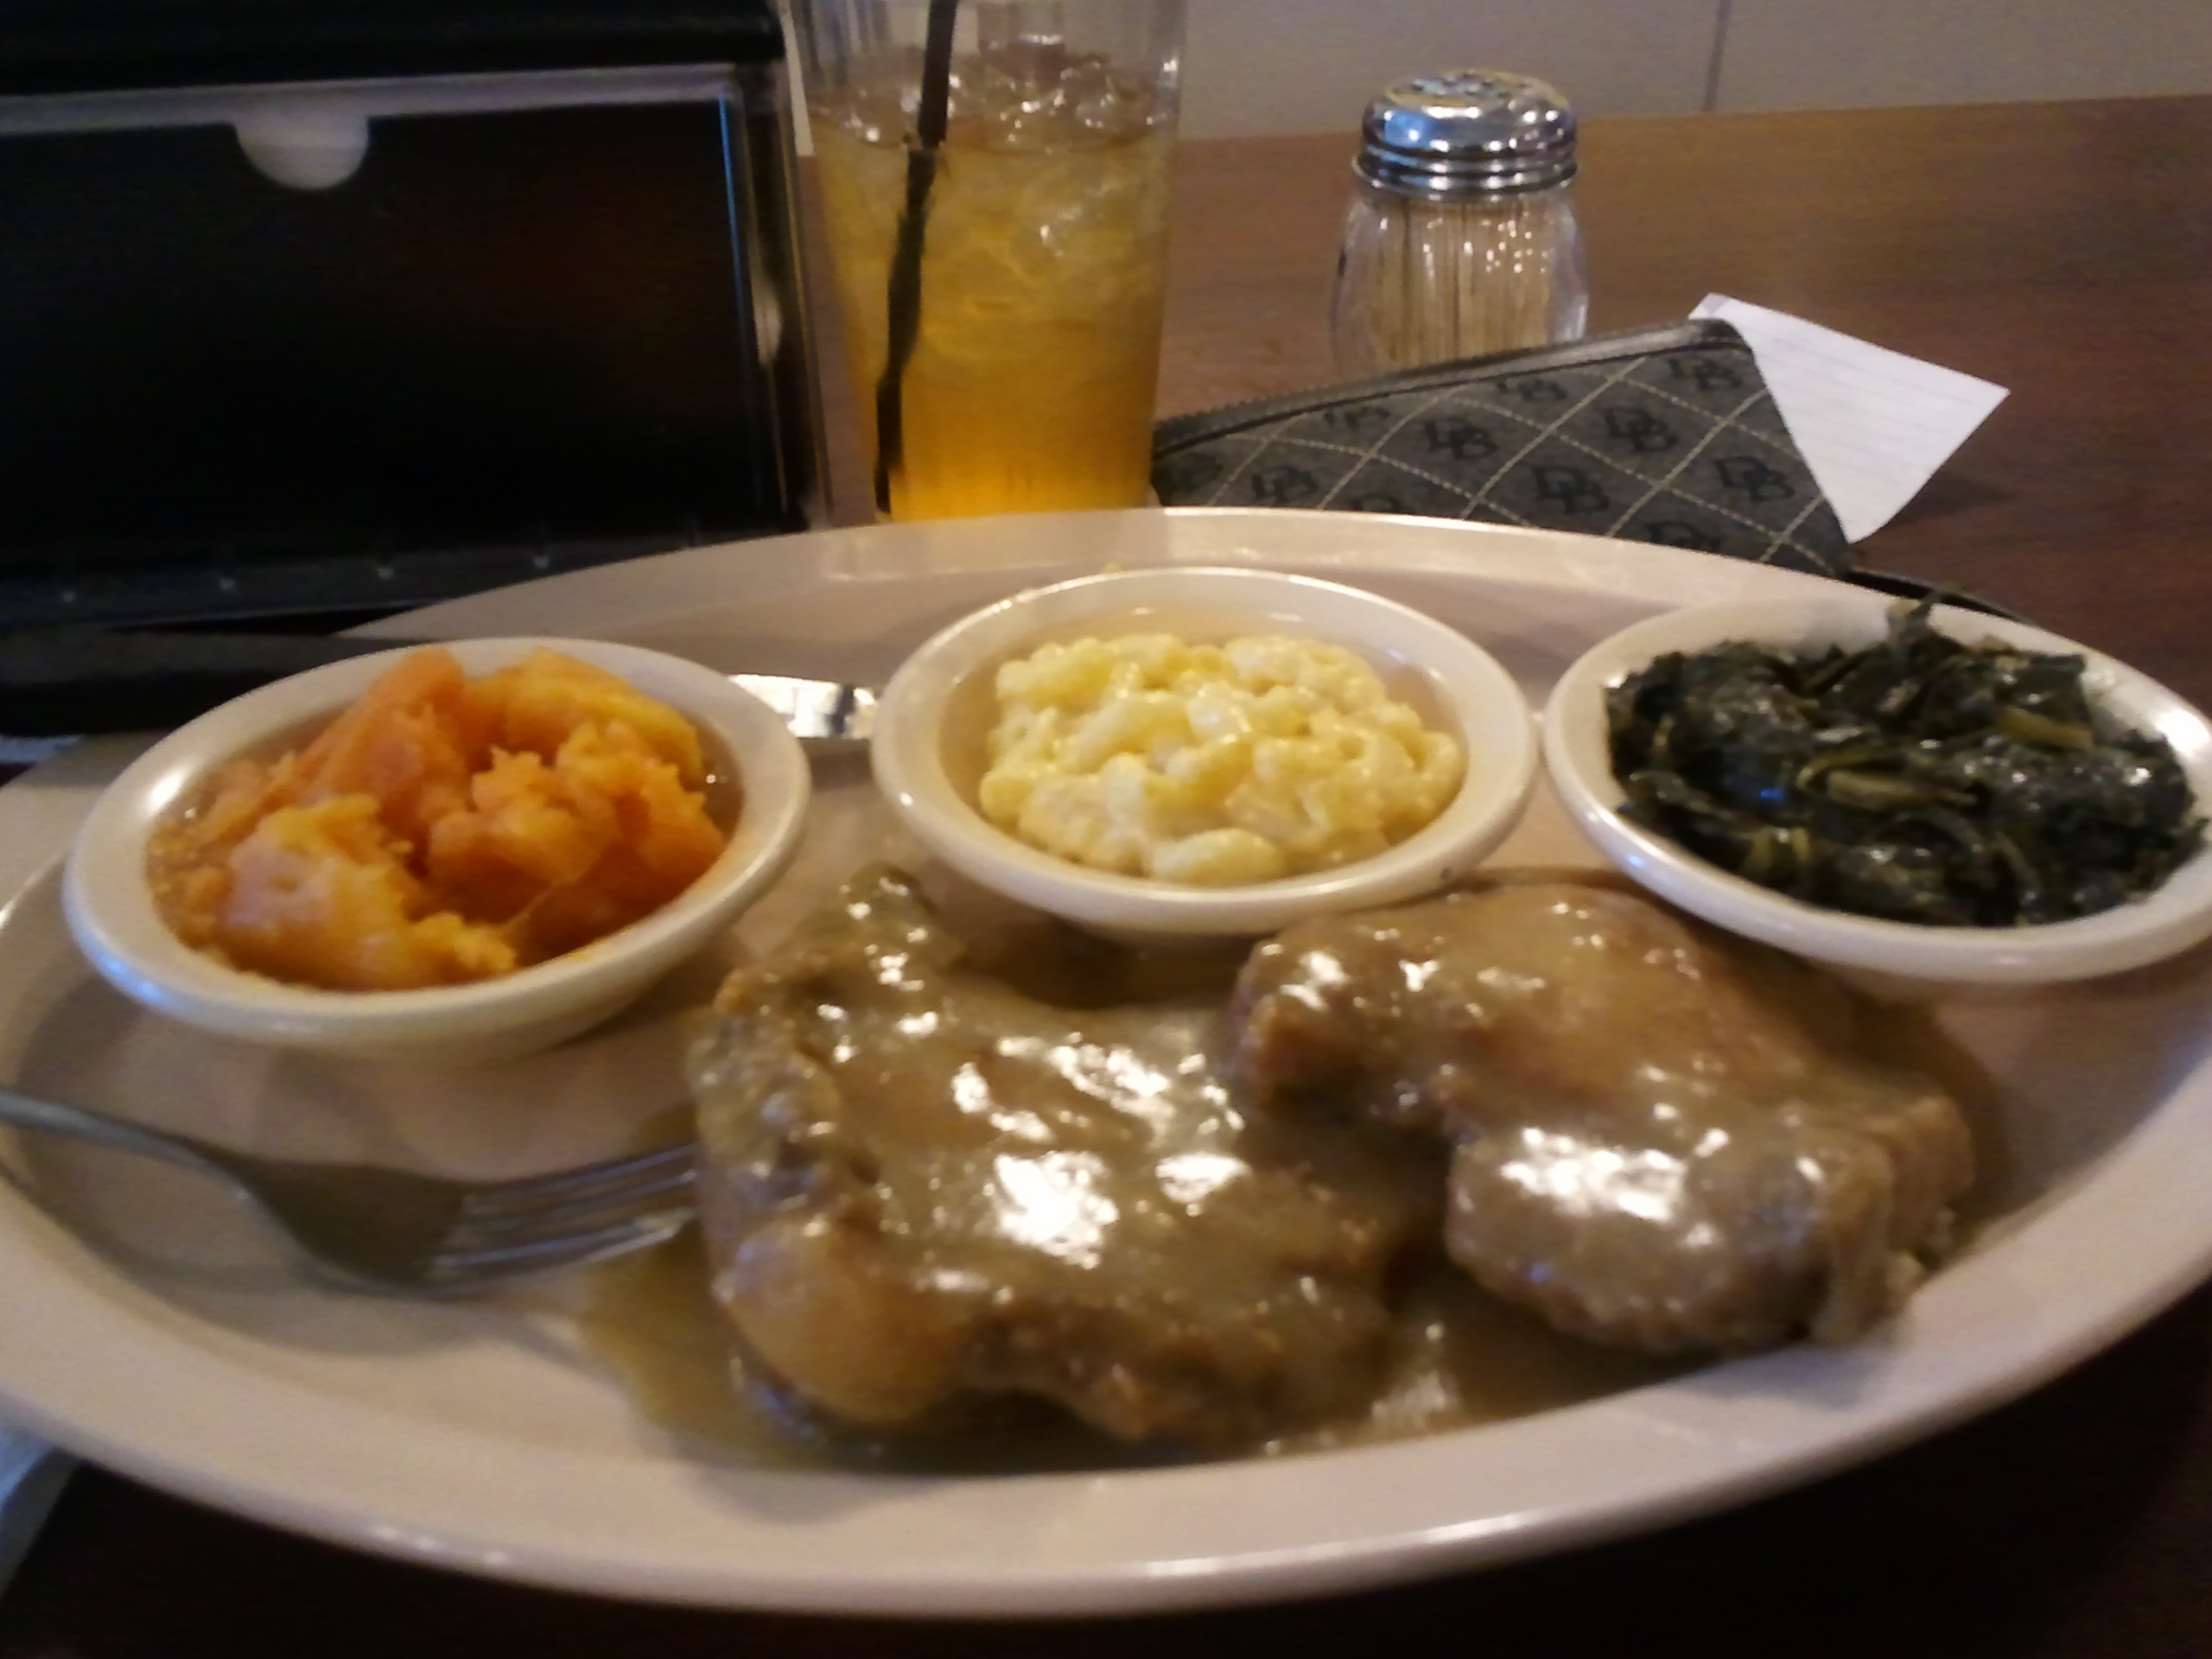 Busy Bee Cafe', Atlanta, GA :: Smothered Pork Chops w/Collards, Mac & Chz, Candied Yams, and Cornbread